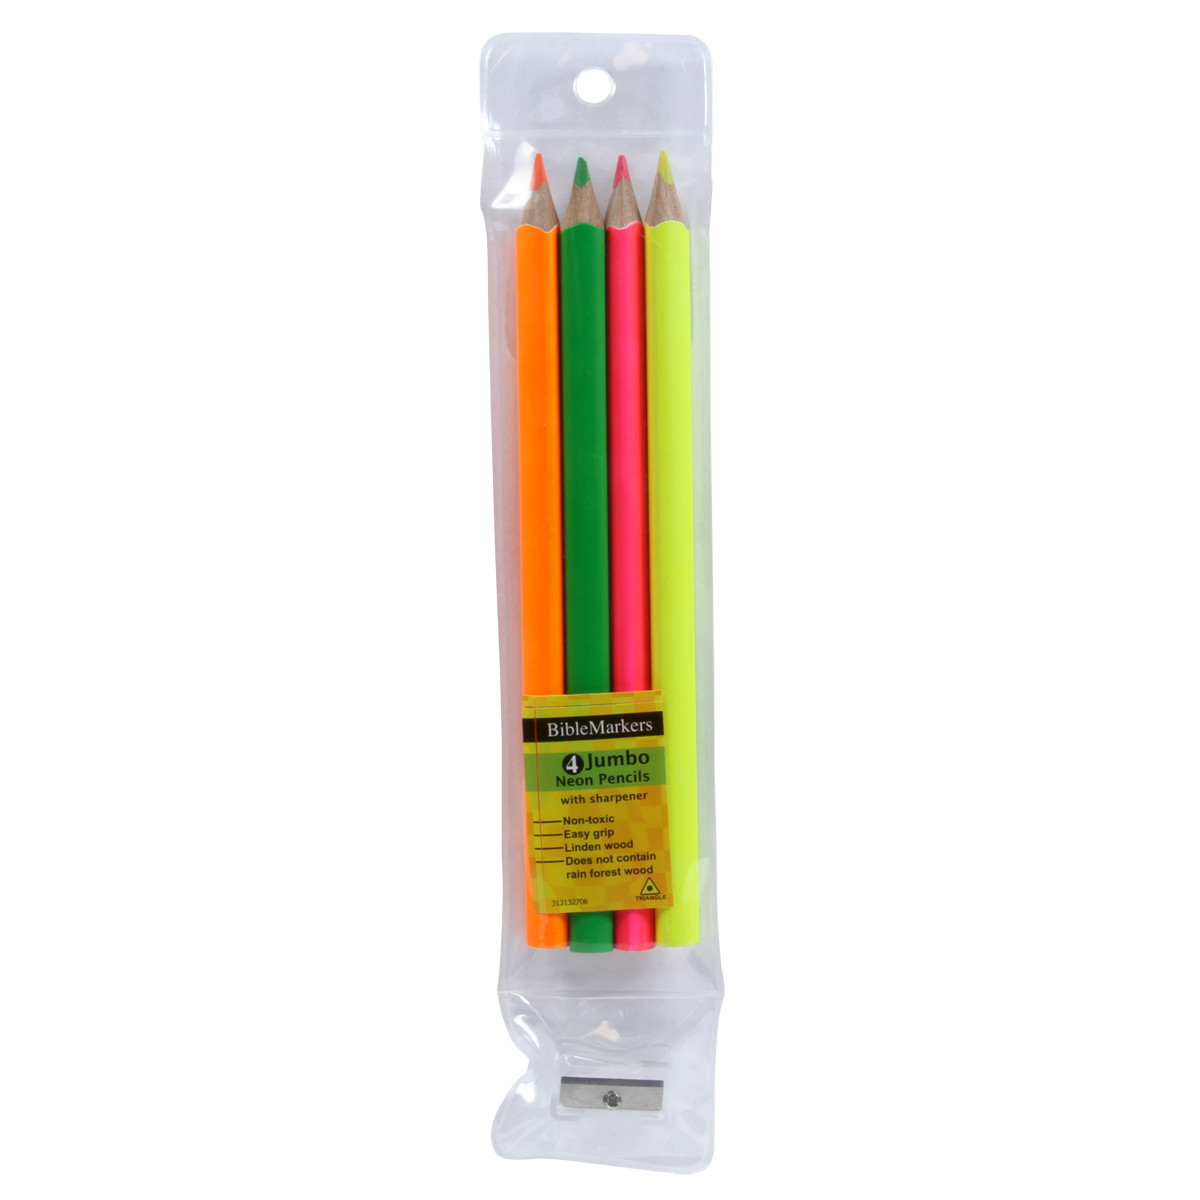 BibleMarkers with Sharpener markers, bible markers, colored pencils, highlighters, PCST236